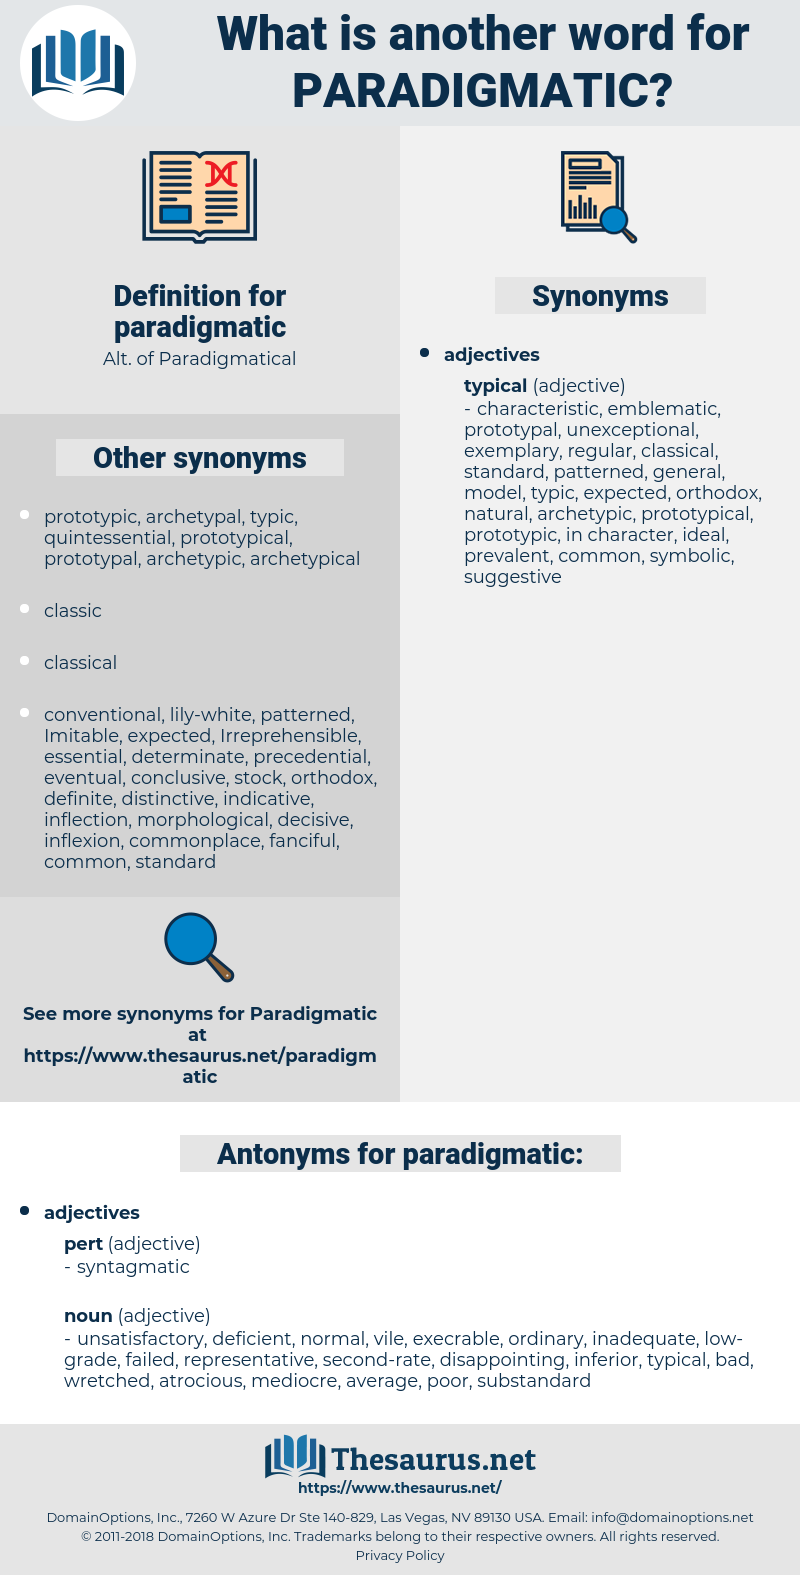 Synonyms for PARADIGMATIC, Antonyms for PARADIGMATIC